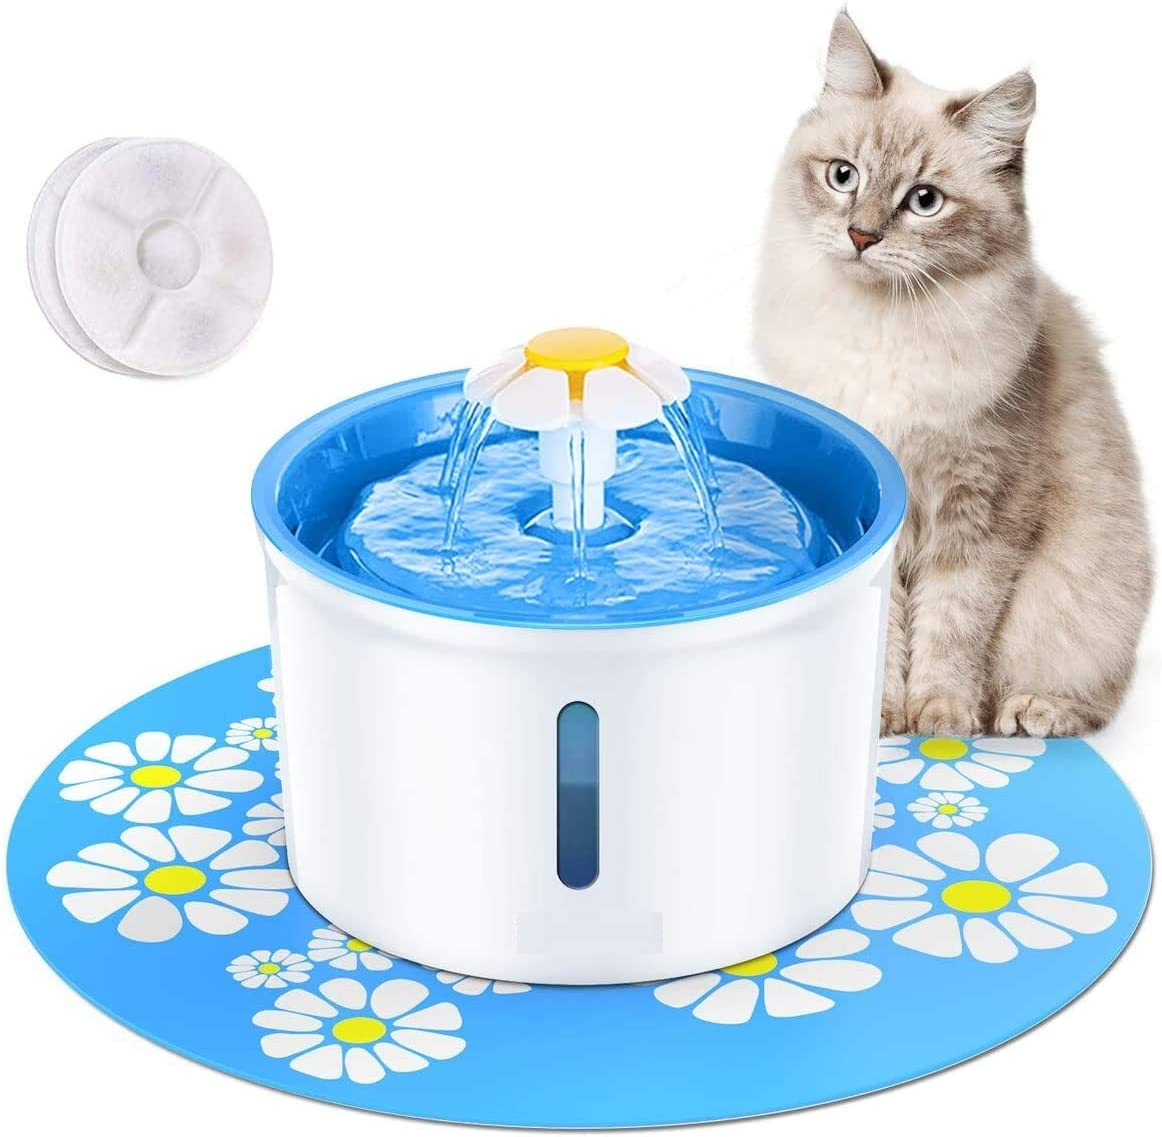 BTMETER Cat Low price Water Fountain -Automatic Electrica Gallon Max 68% OFF Large 0.8